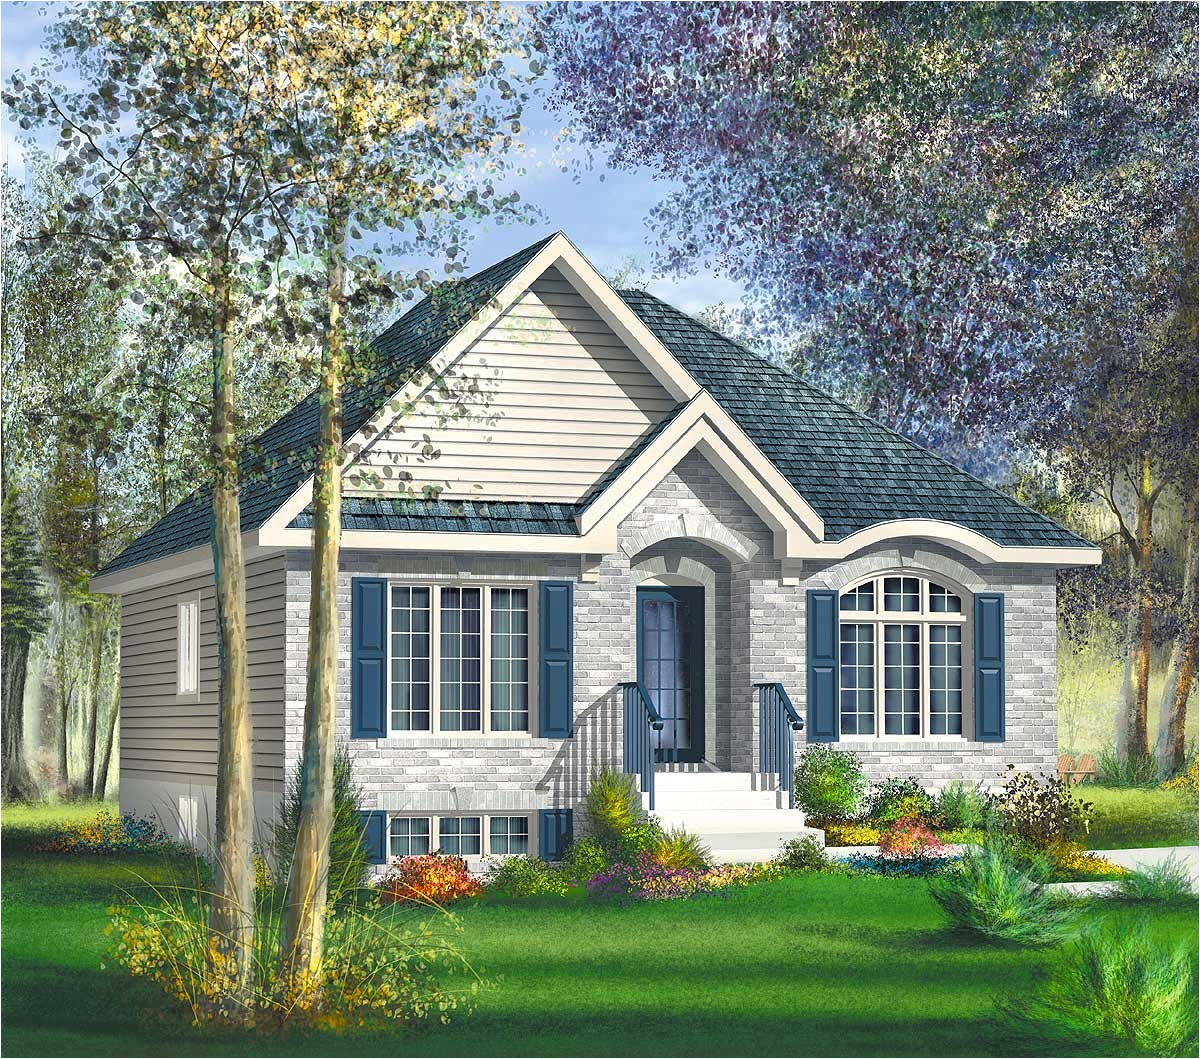 Cozy Cottage Home Plans Cozy Bungalow Cottage 80401pm Architectural Designs